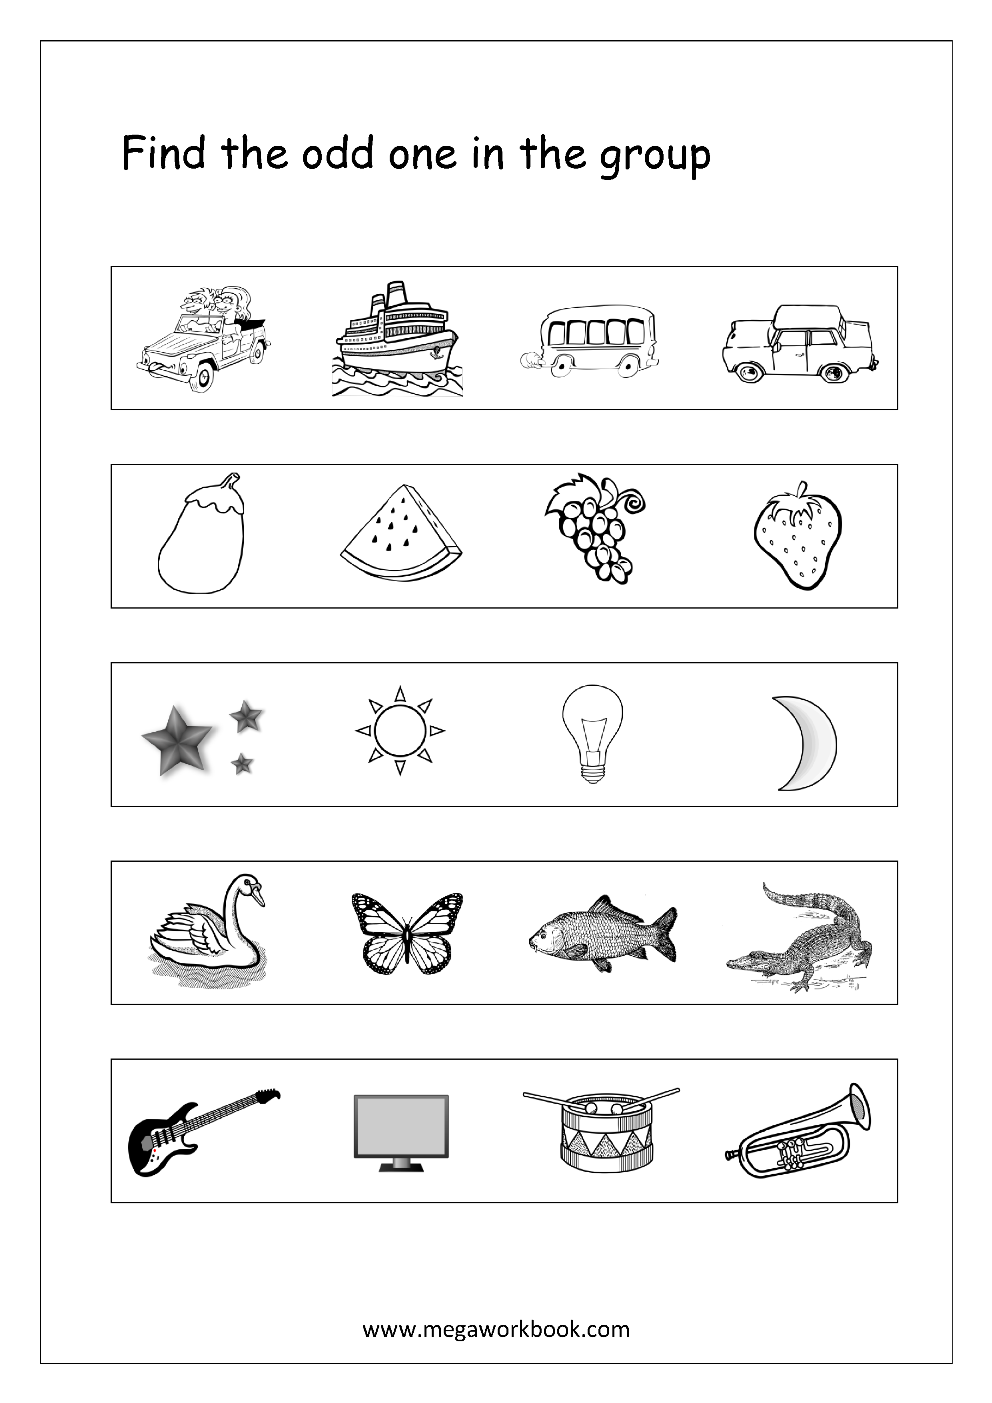 odd one out printable odd one out worksheet 3 kids math worksheets nursery odd out printable one